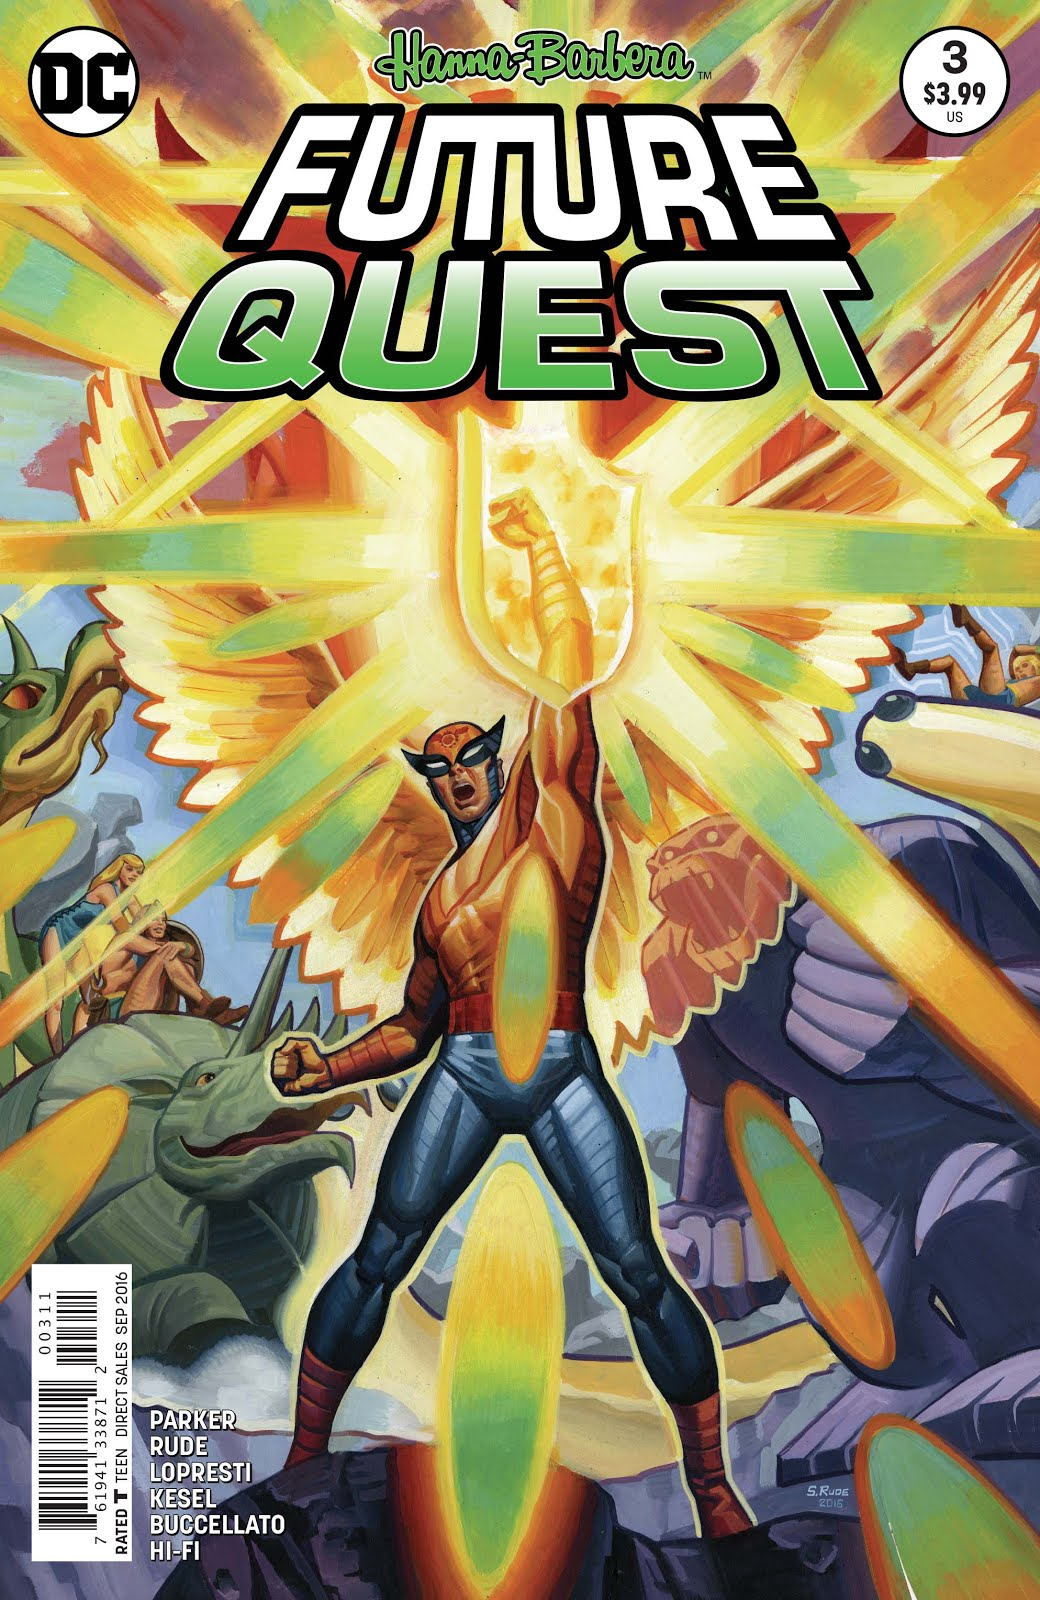 HANNA-BARBERA'S FUTURE QUEST